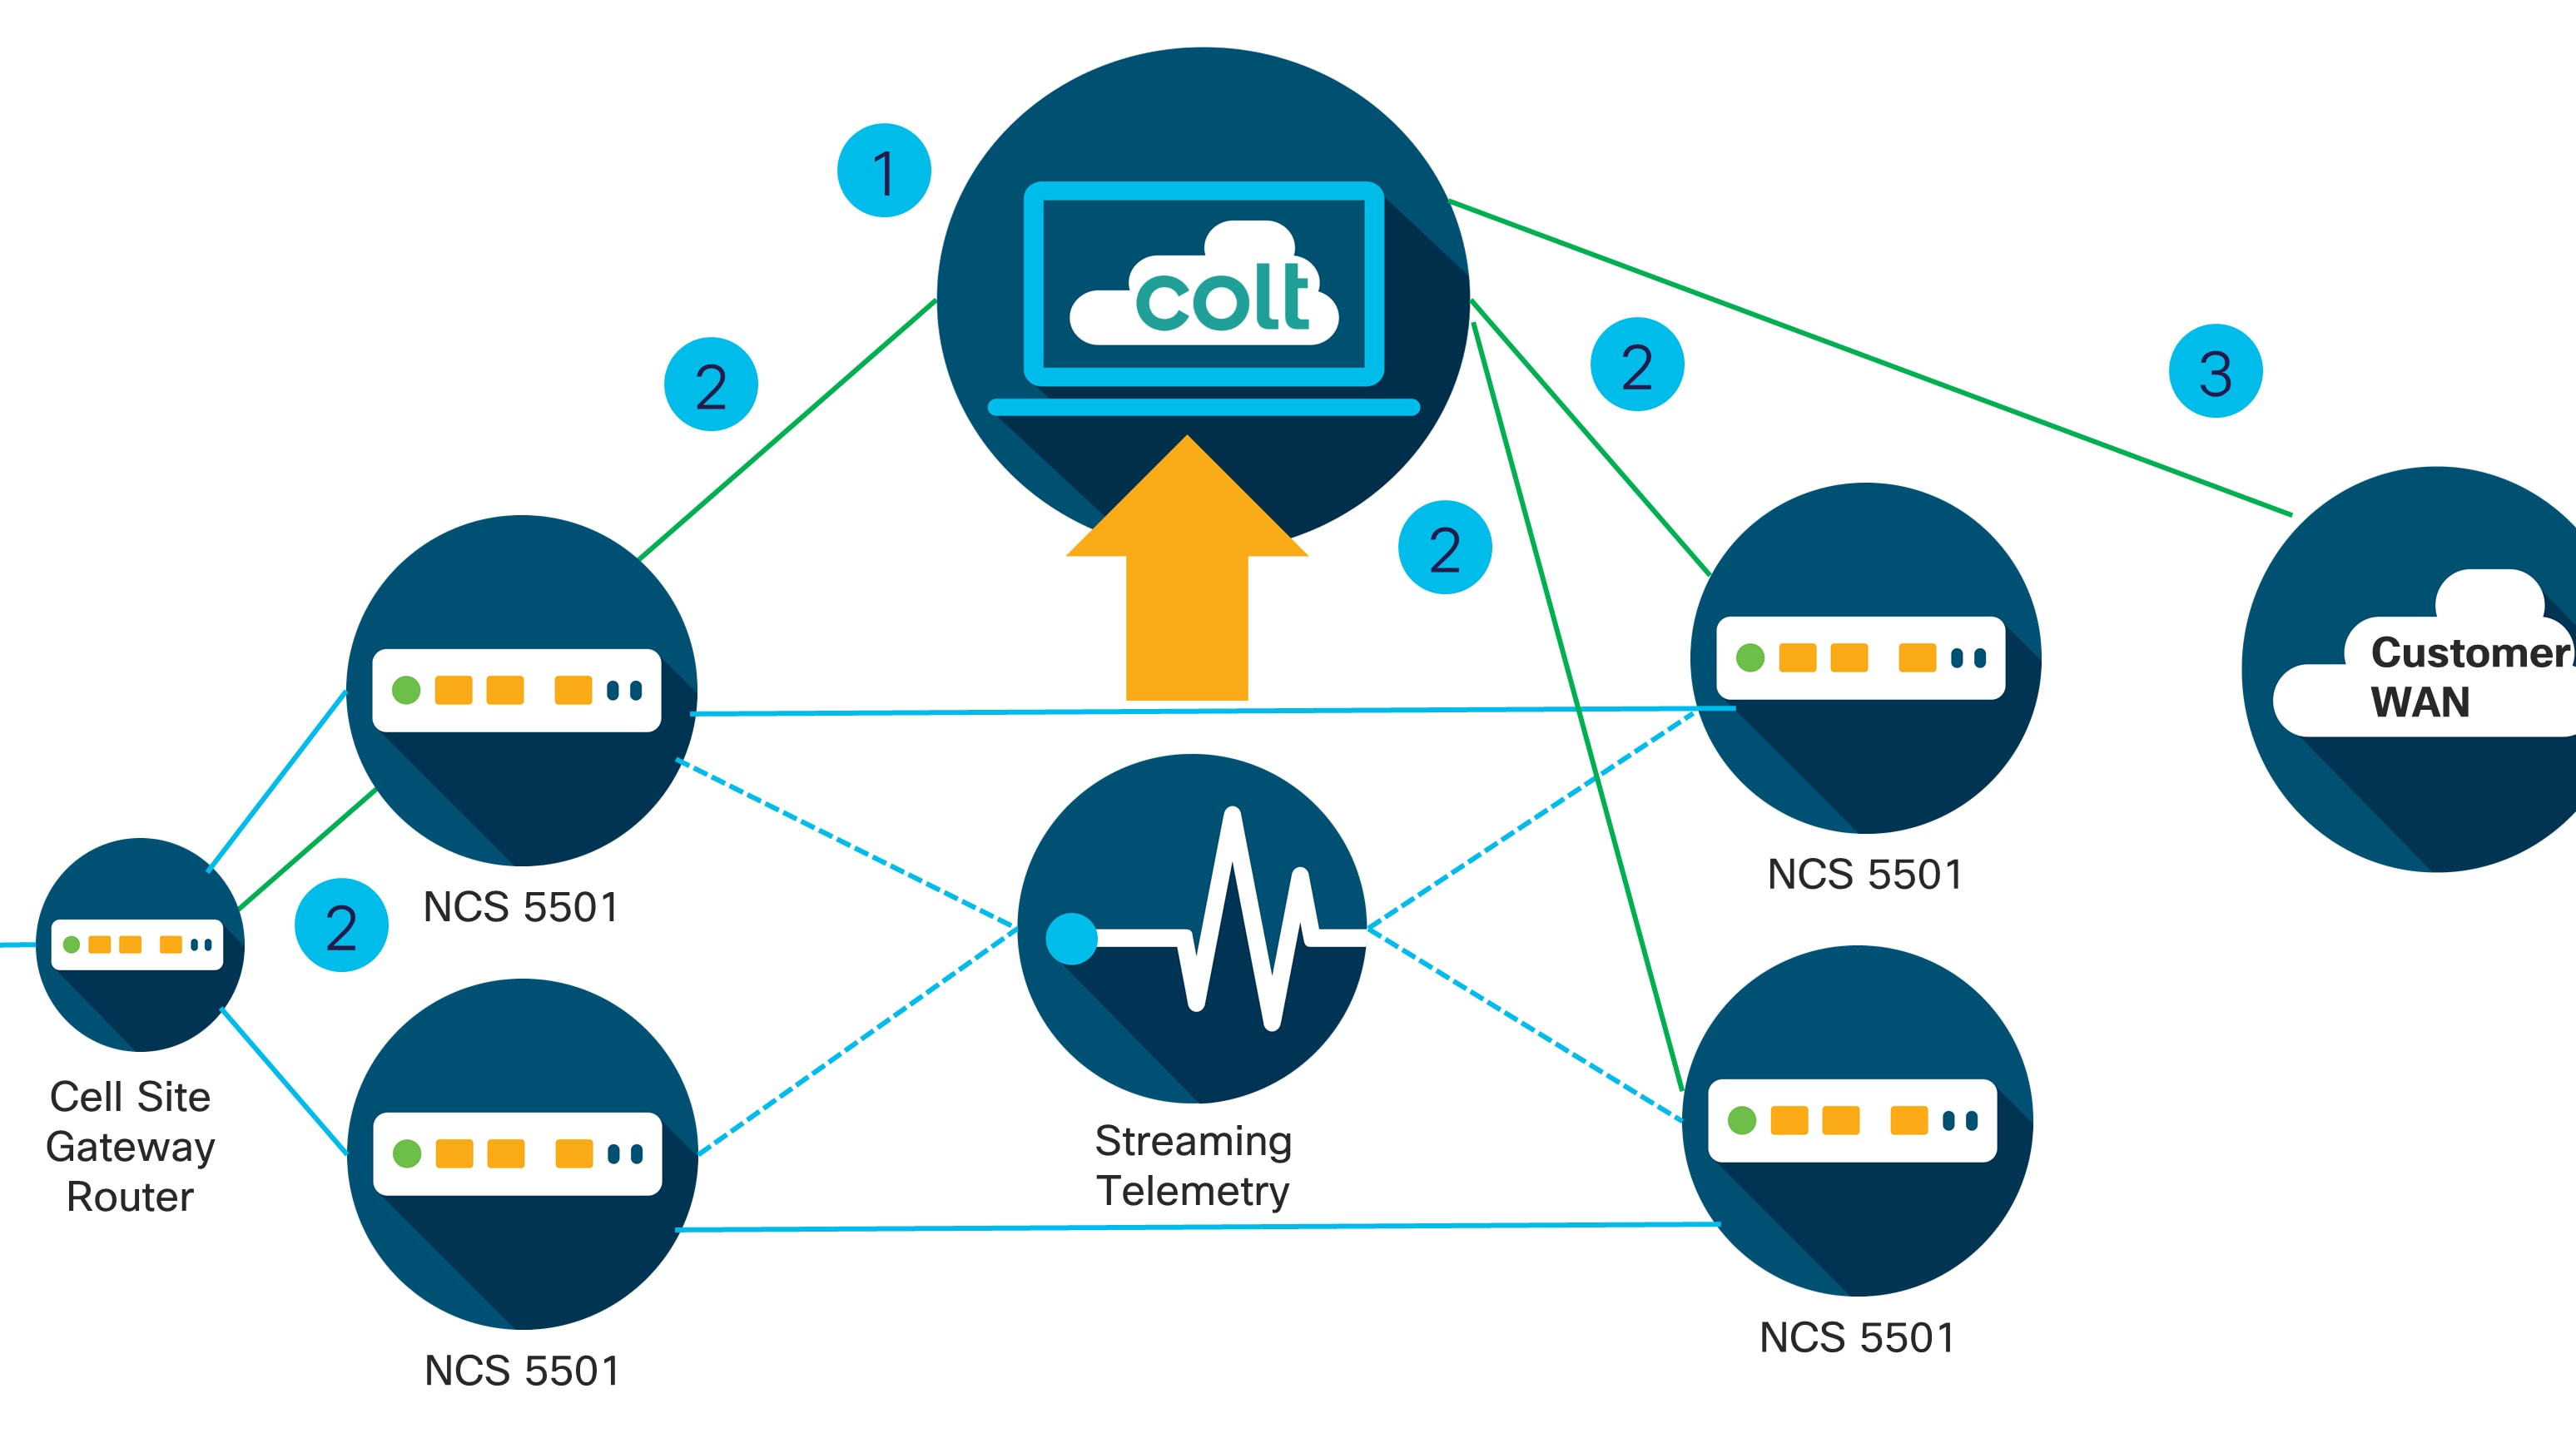 Learn how Colt simplified its network to deliver 5G services